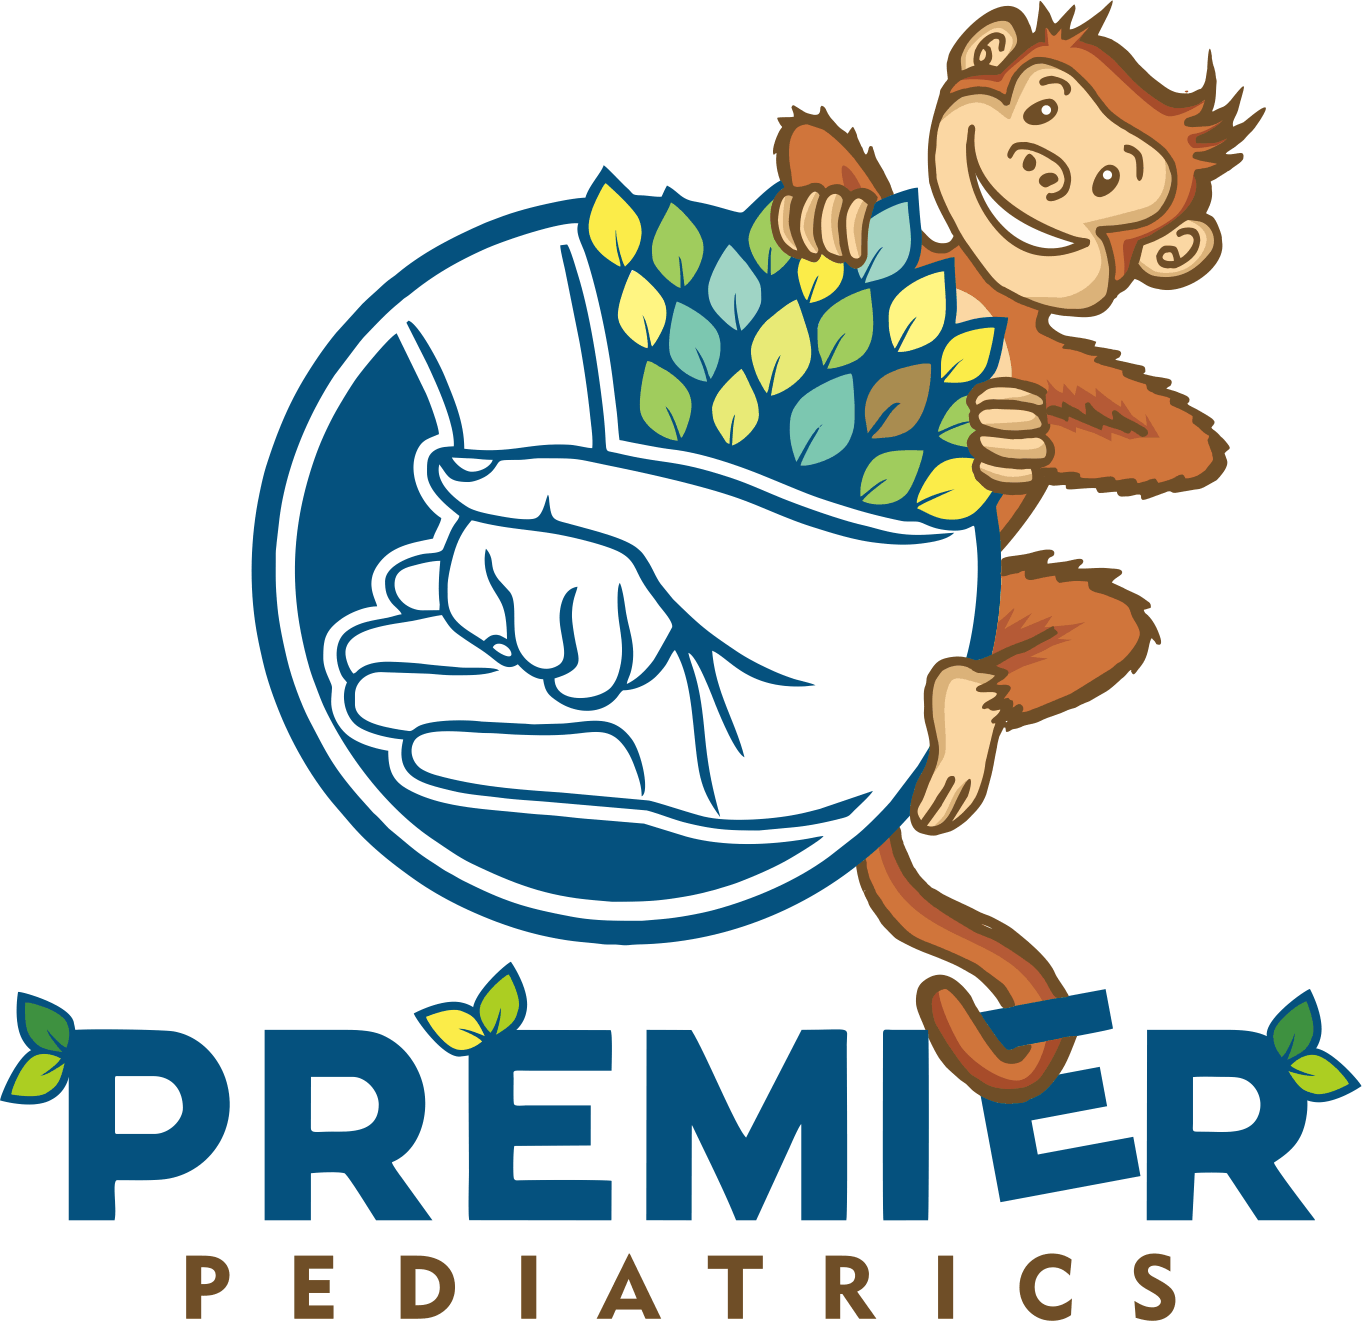 Premier Chiropractic is proud to serve children of all ages with neurologically-based chiropractic care. Our adjustments are gentle for children of any age from newborn to college.